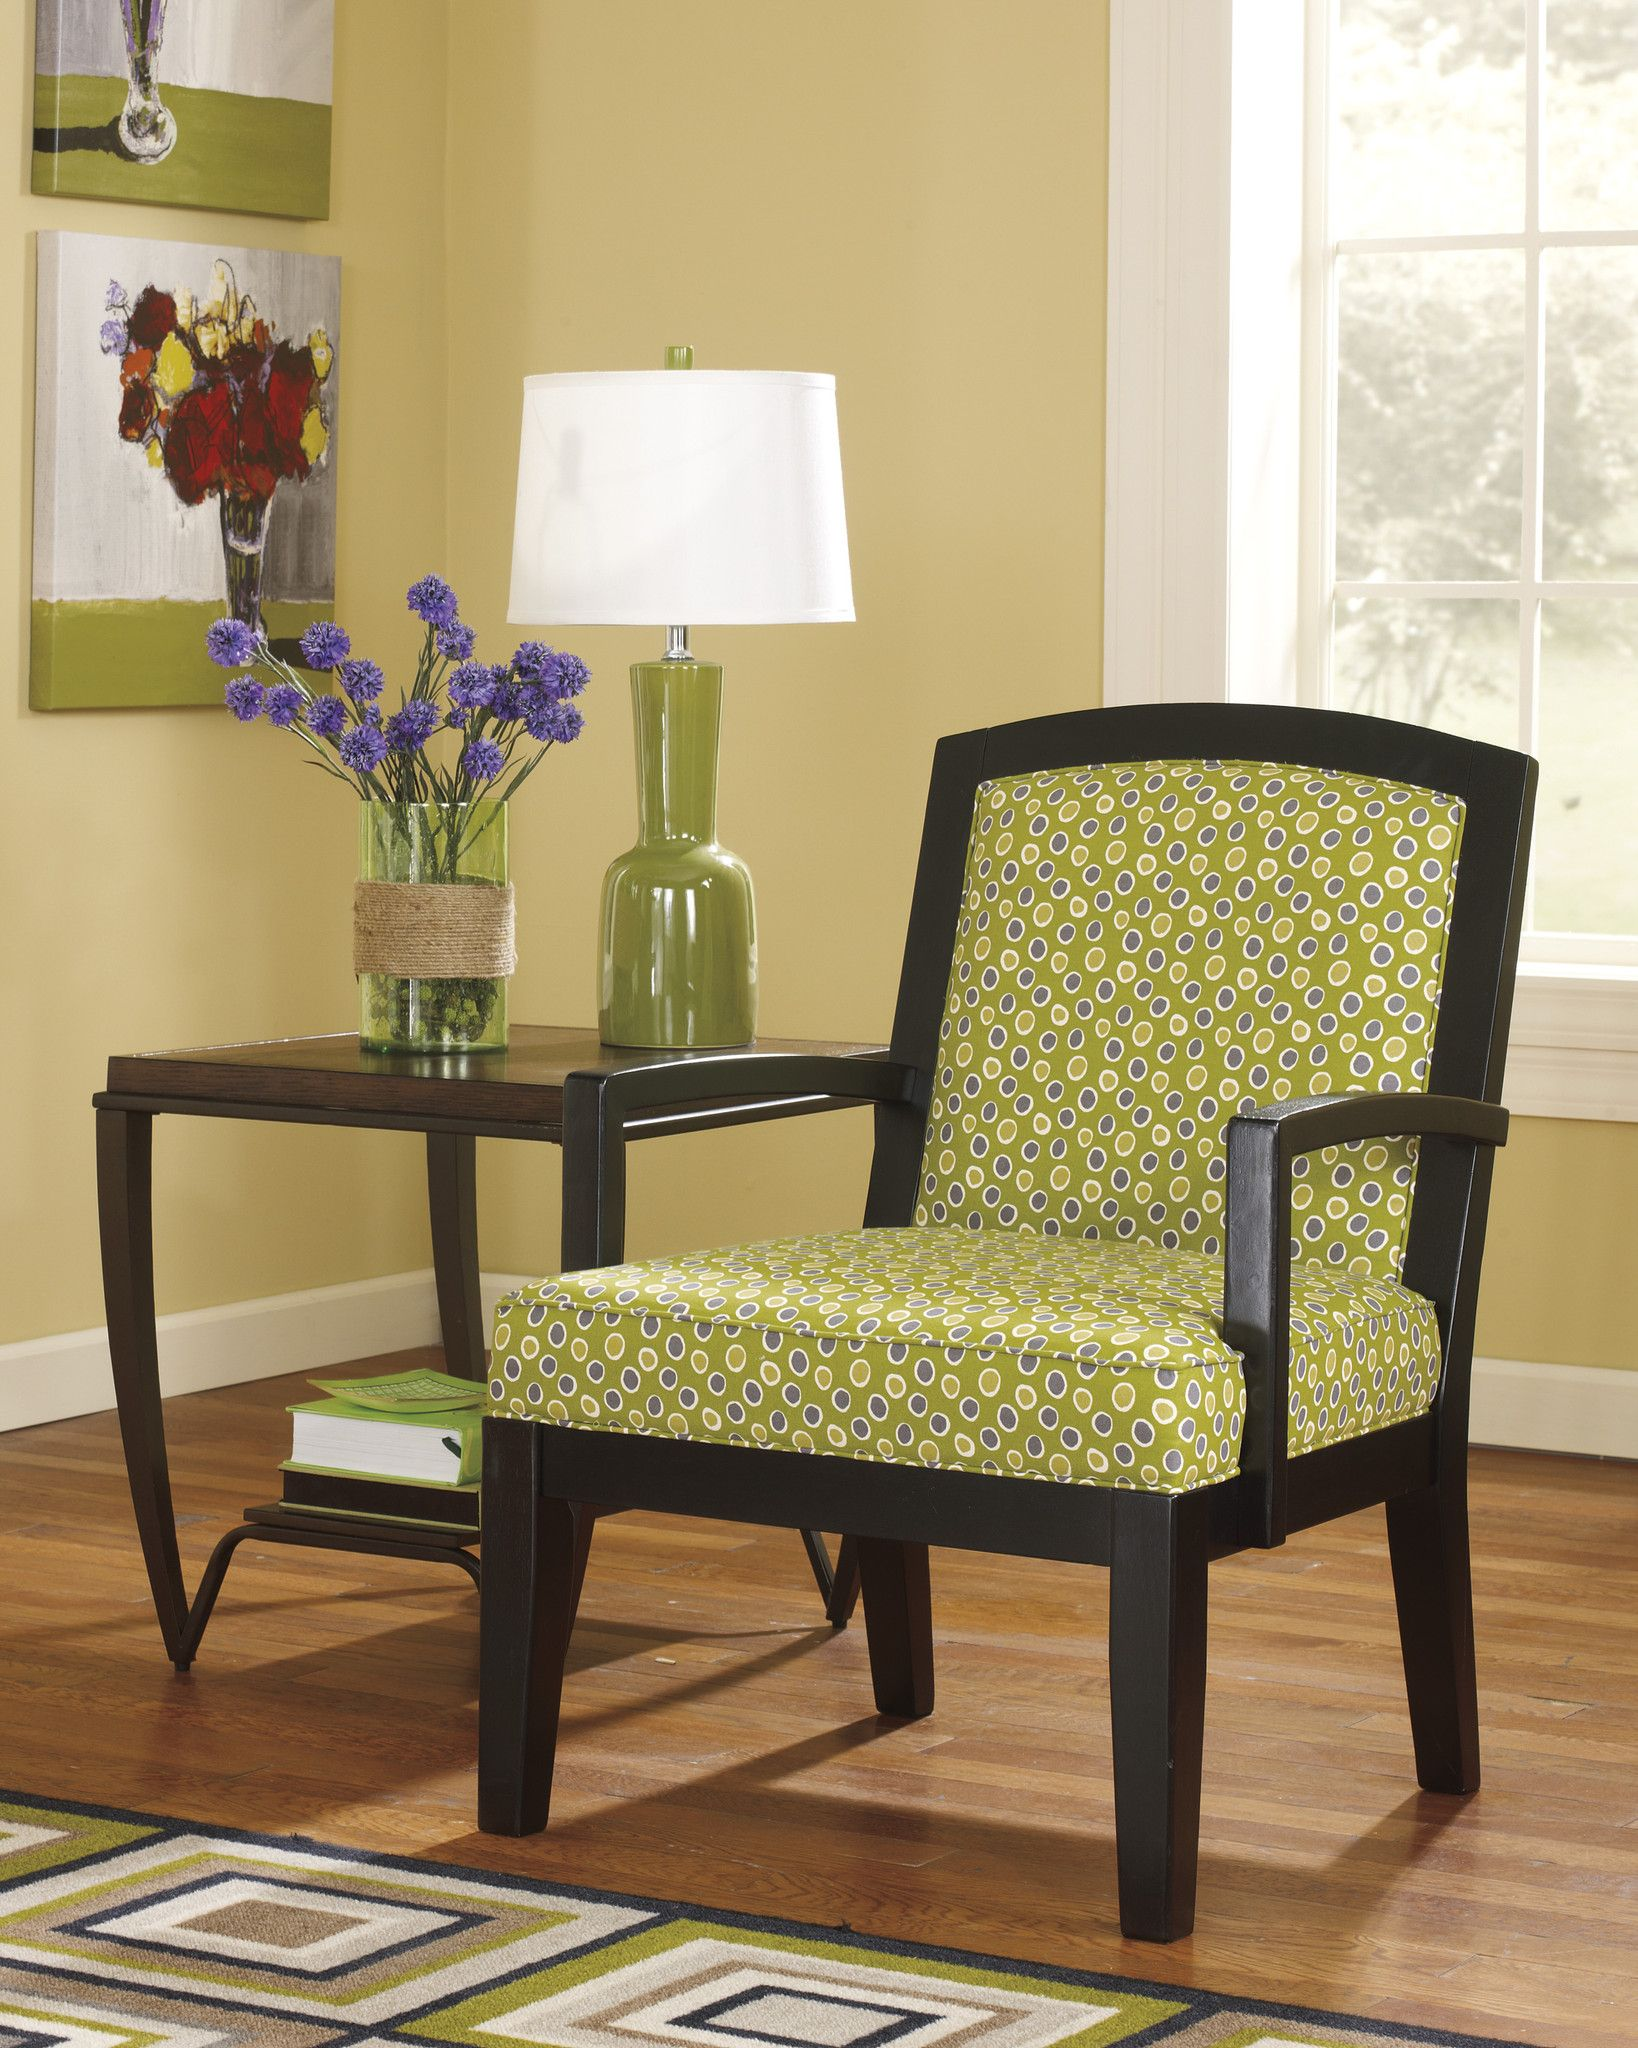 Nolana Accents D Accent Chair | Fabric accent chair ...